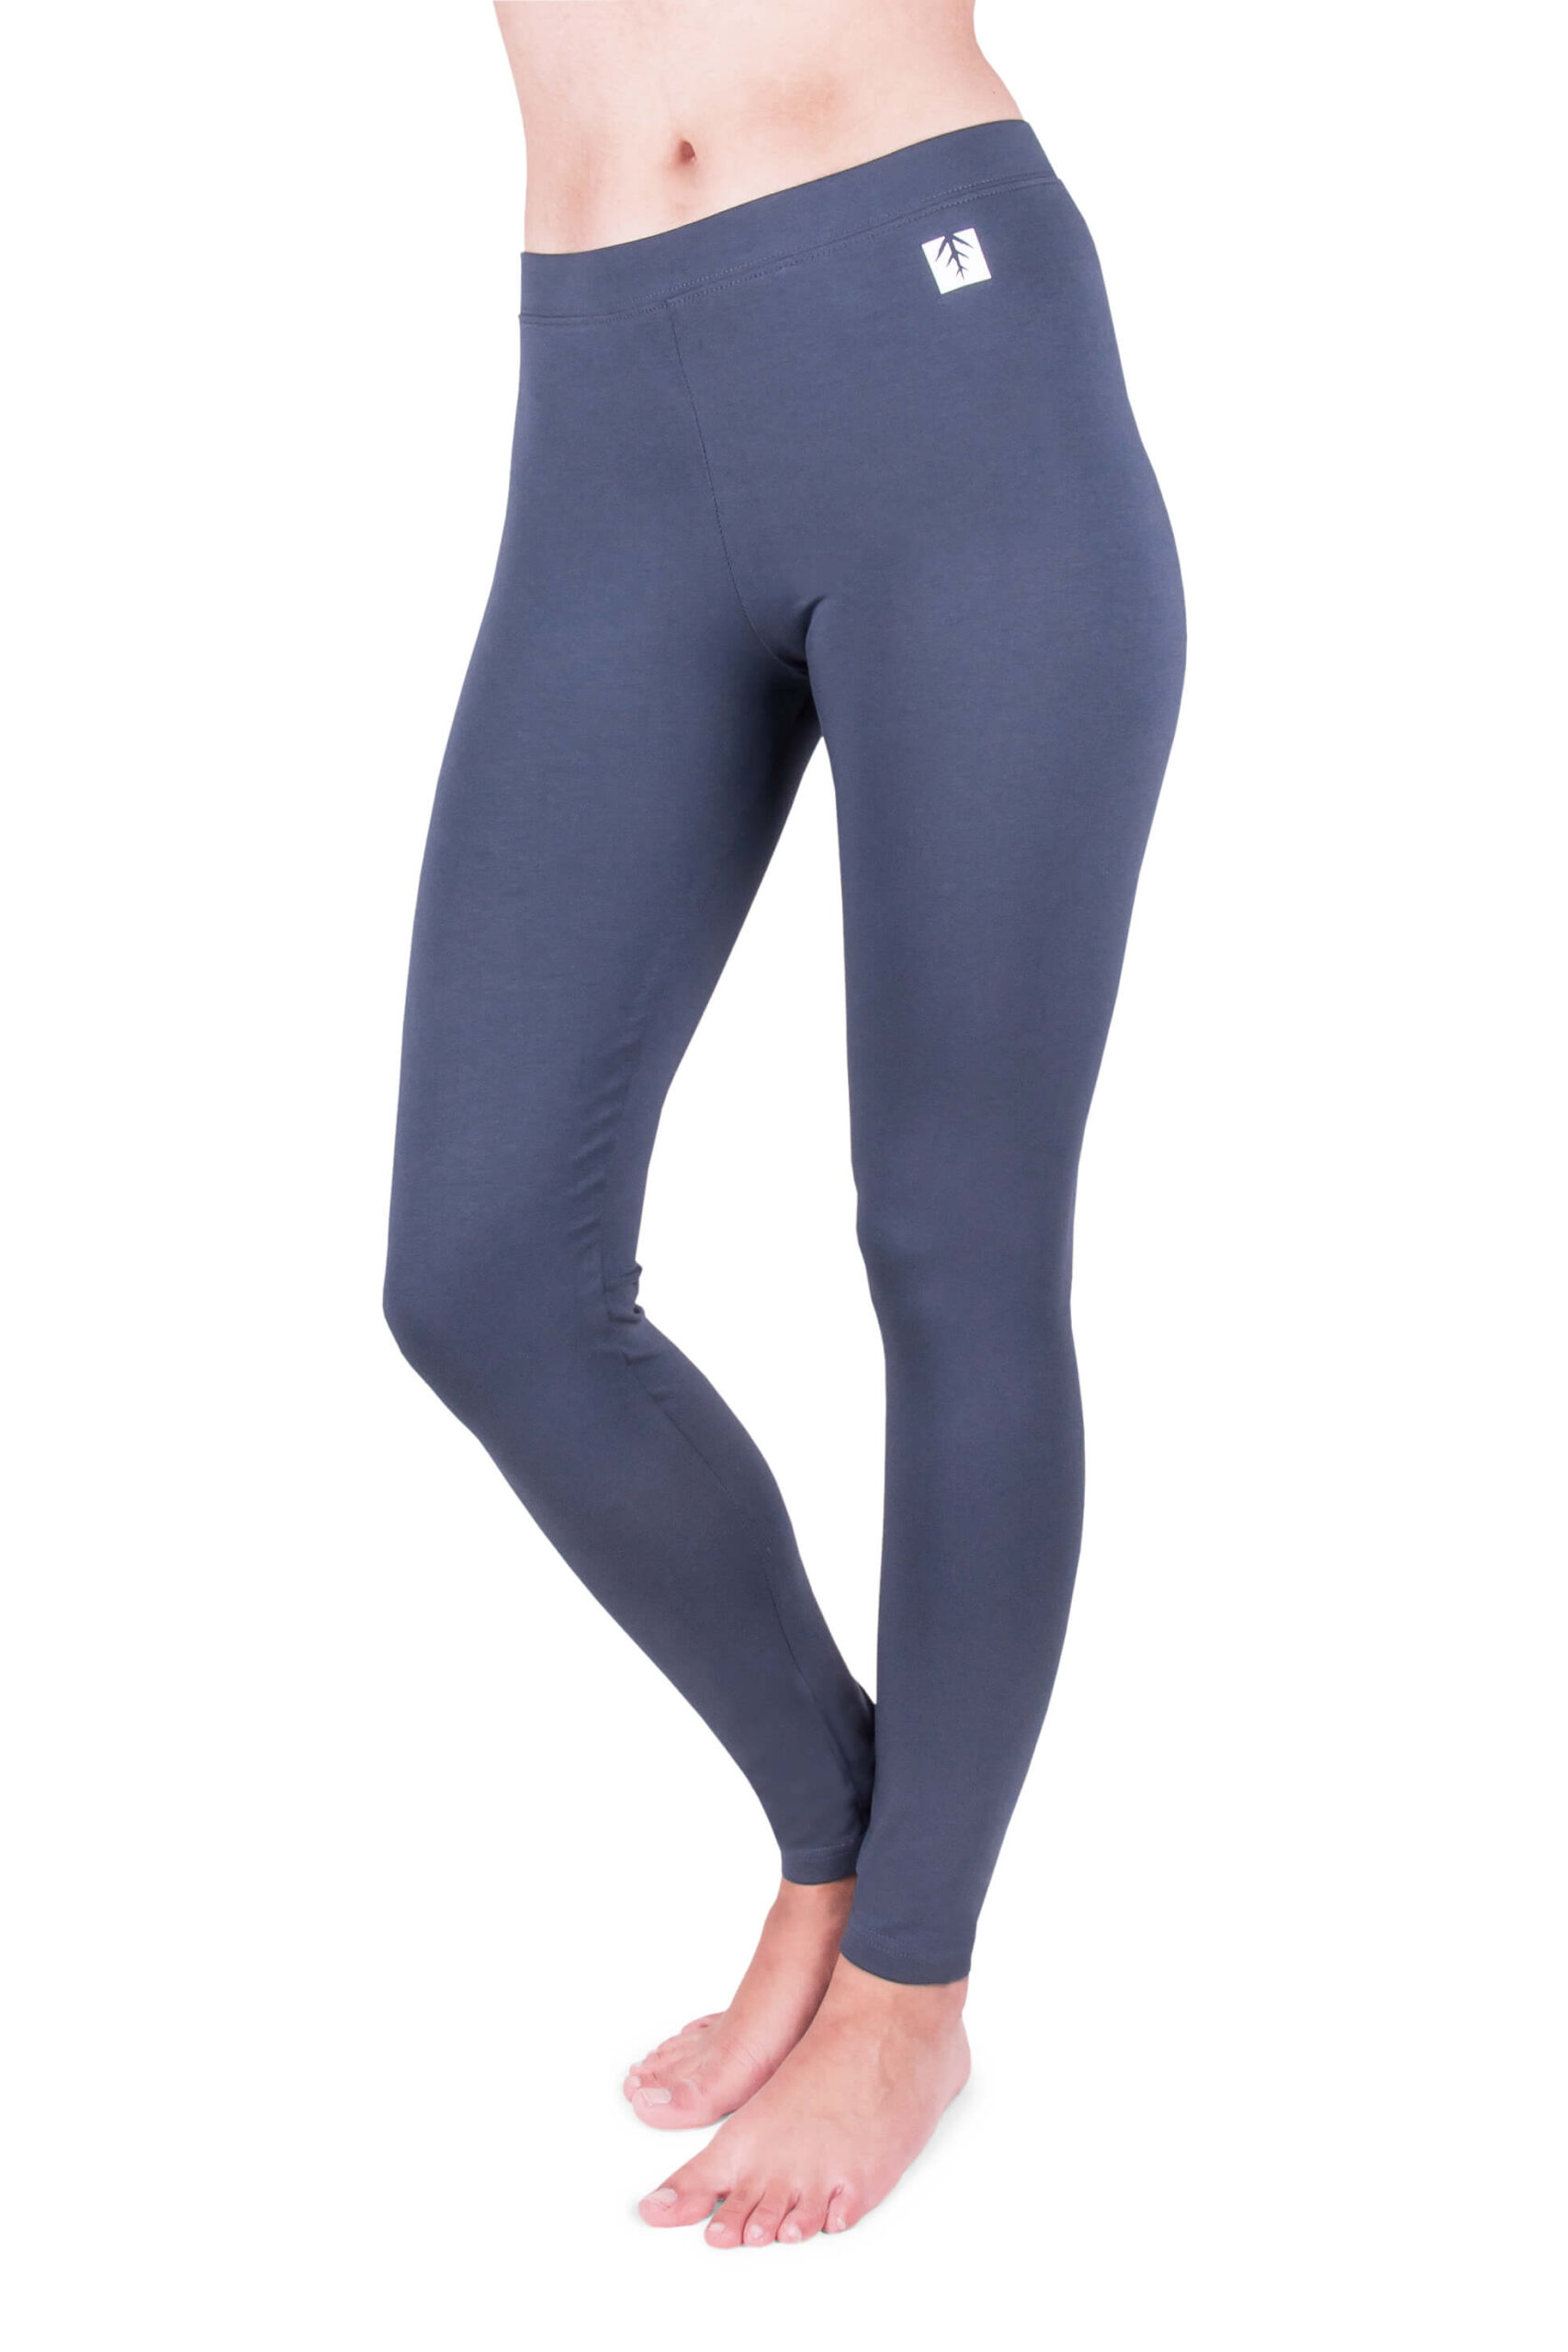 GRAPHITE Womens Leggings Full Length Hight Quality Cotton Active Run Trousers